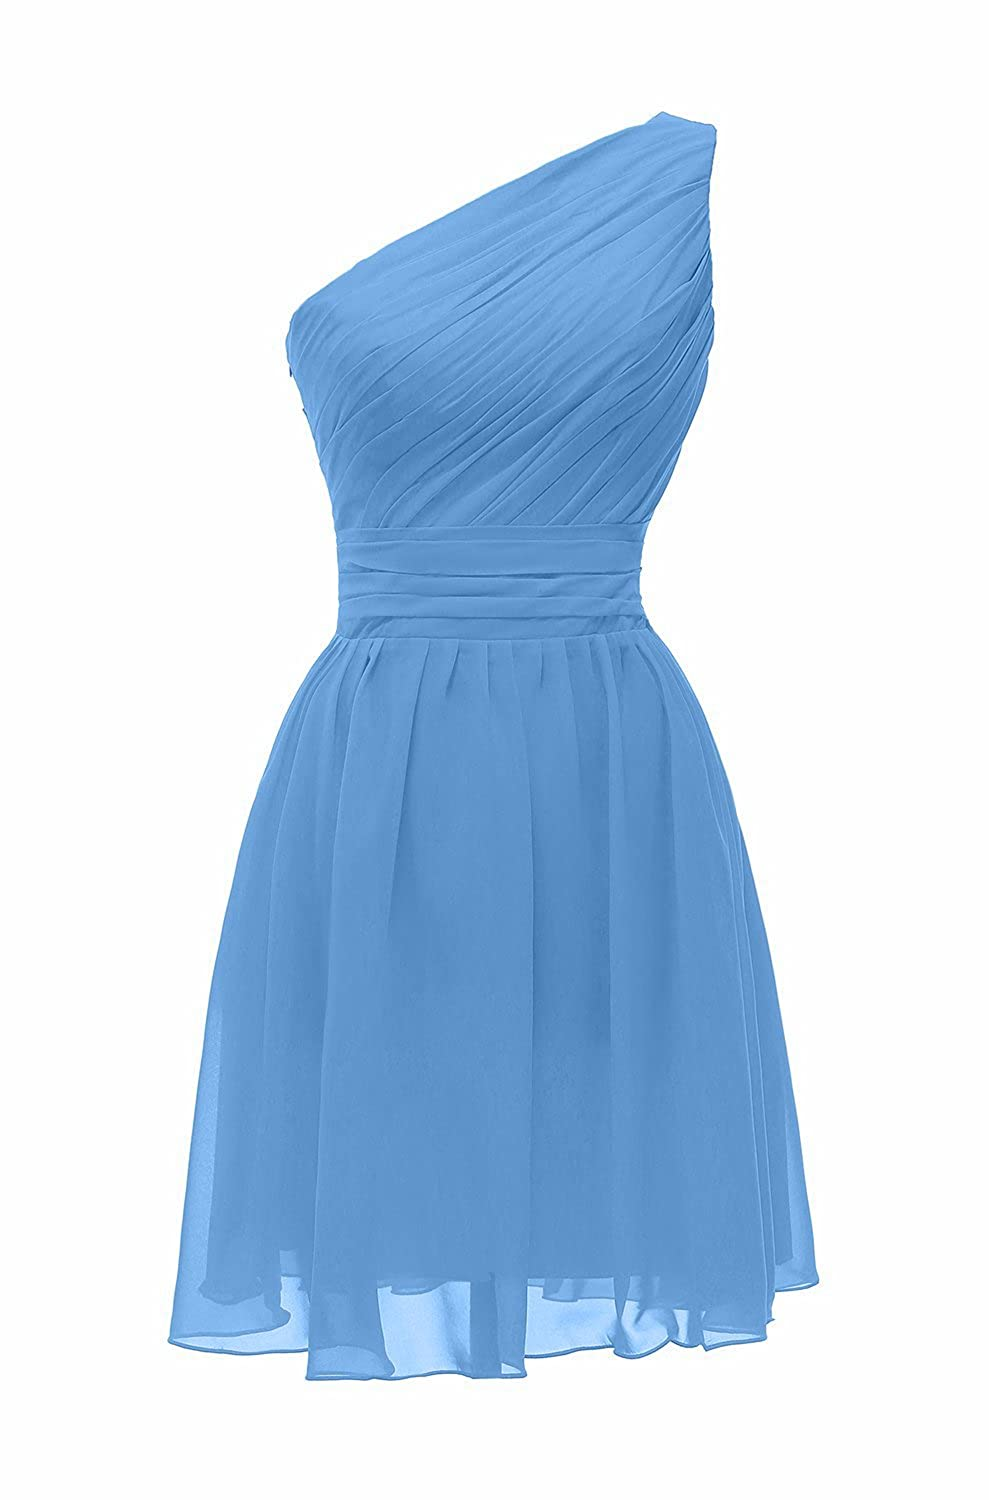 Lily Anny Womens Short One Shoulder Chiffon Bridesmaid Dresses Prom Gowns L195LF